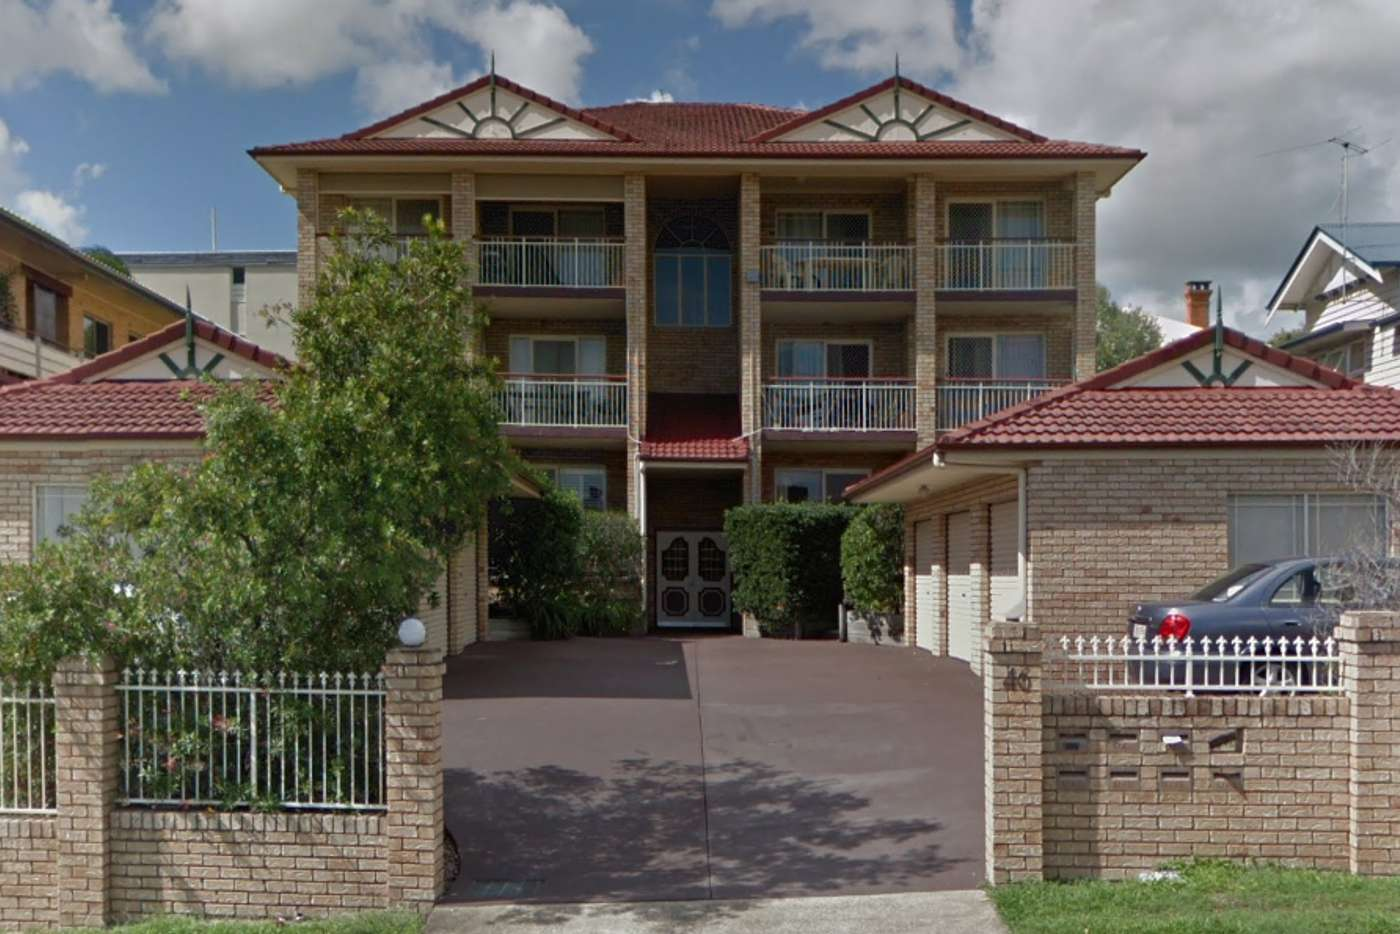 Main view of Homely apartment listing, 4/46 Amelia Street, Coorparoo QLD 4151